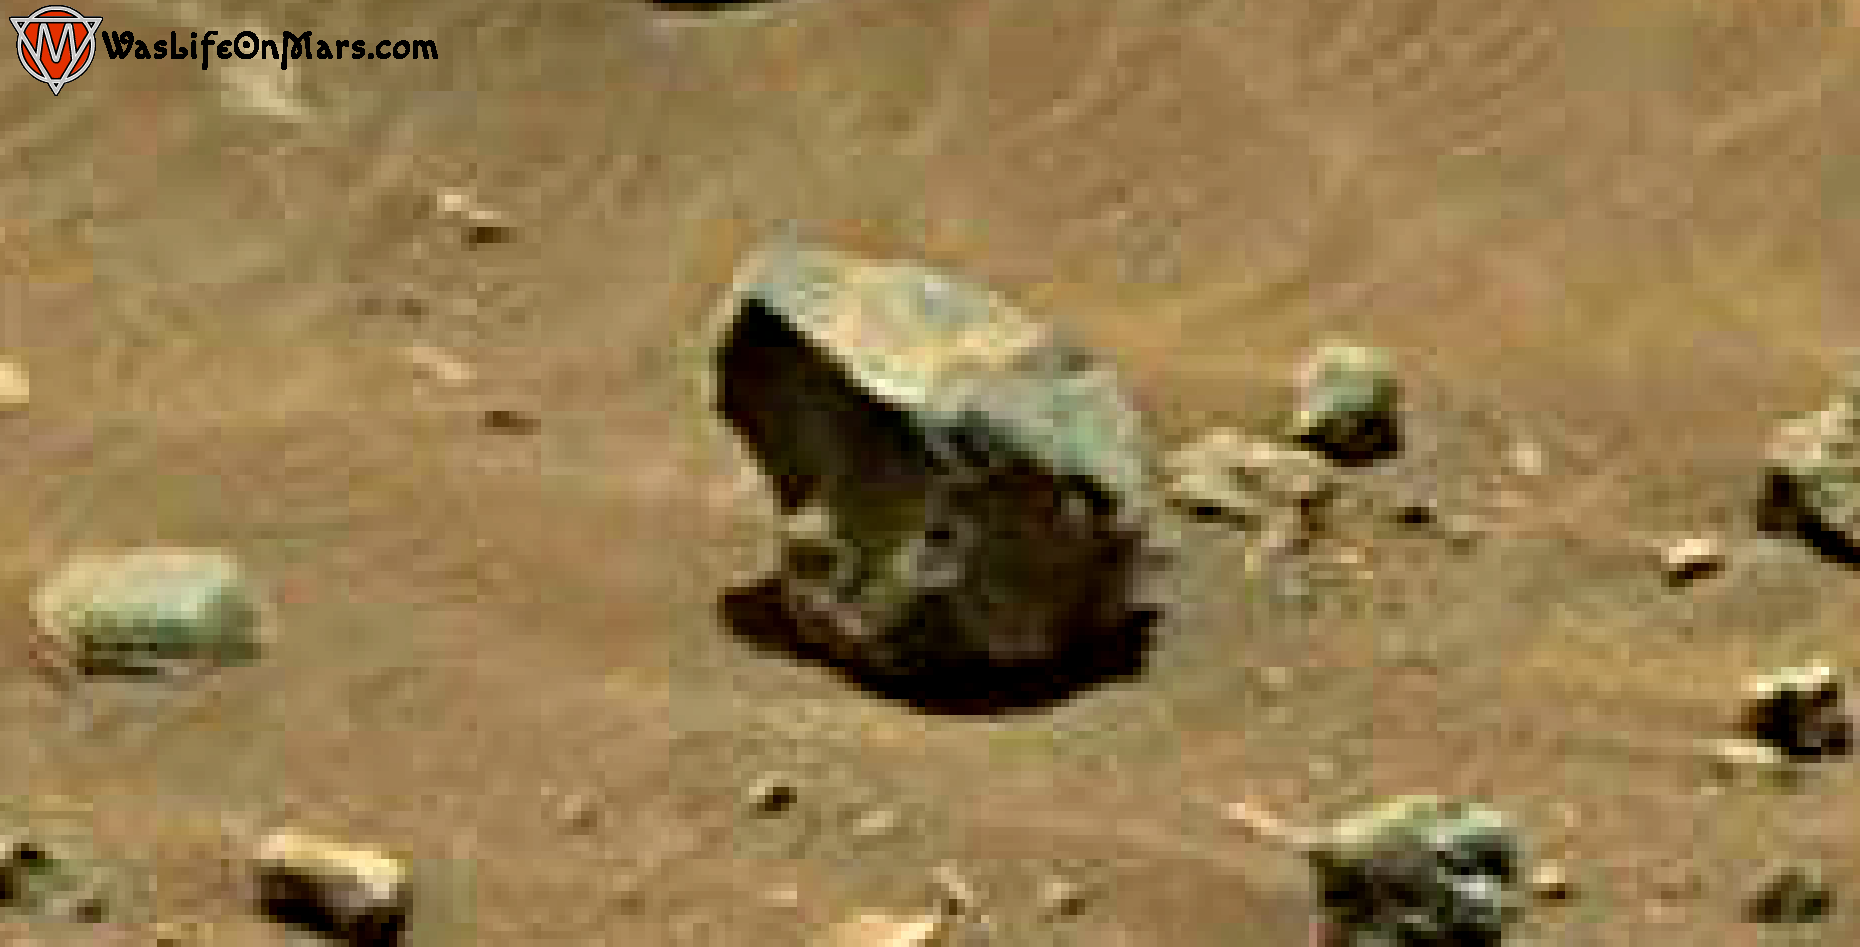 mars sol 1399 anomaly artifacts 5 was life on mars